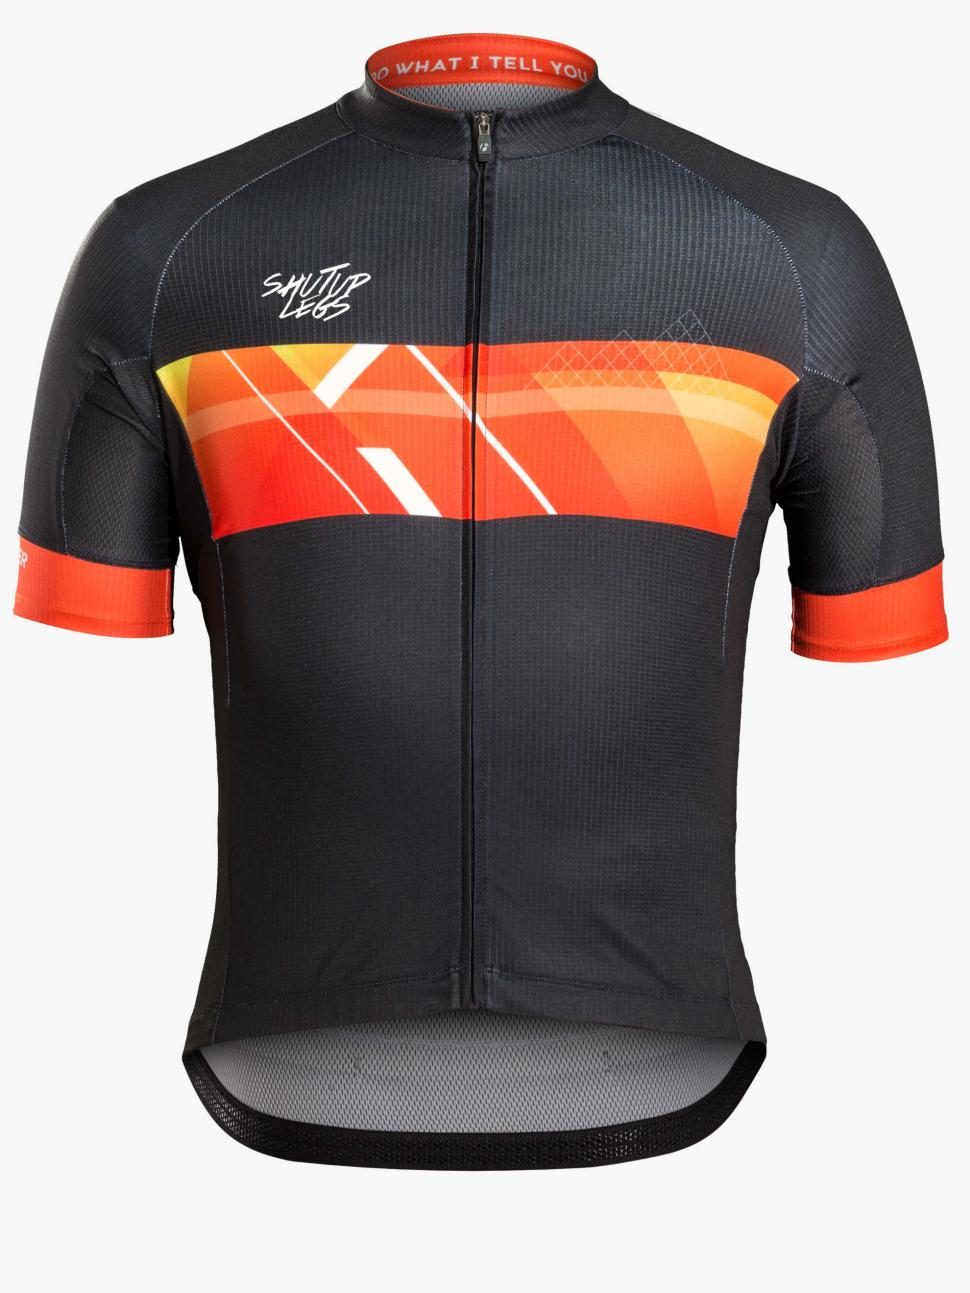 9ae440b29 The Bontrager Shut Up Legs Jersey (£69.99) is made from Profila Dry fabric  with mesh inserts